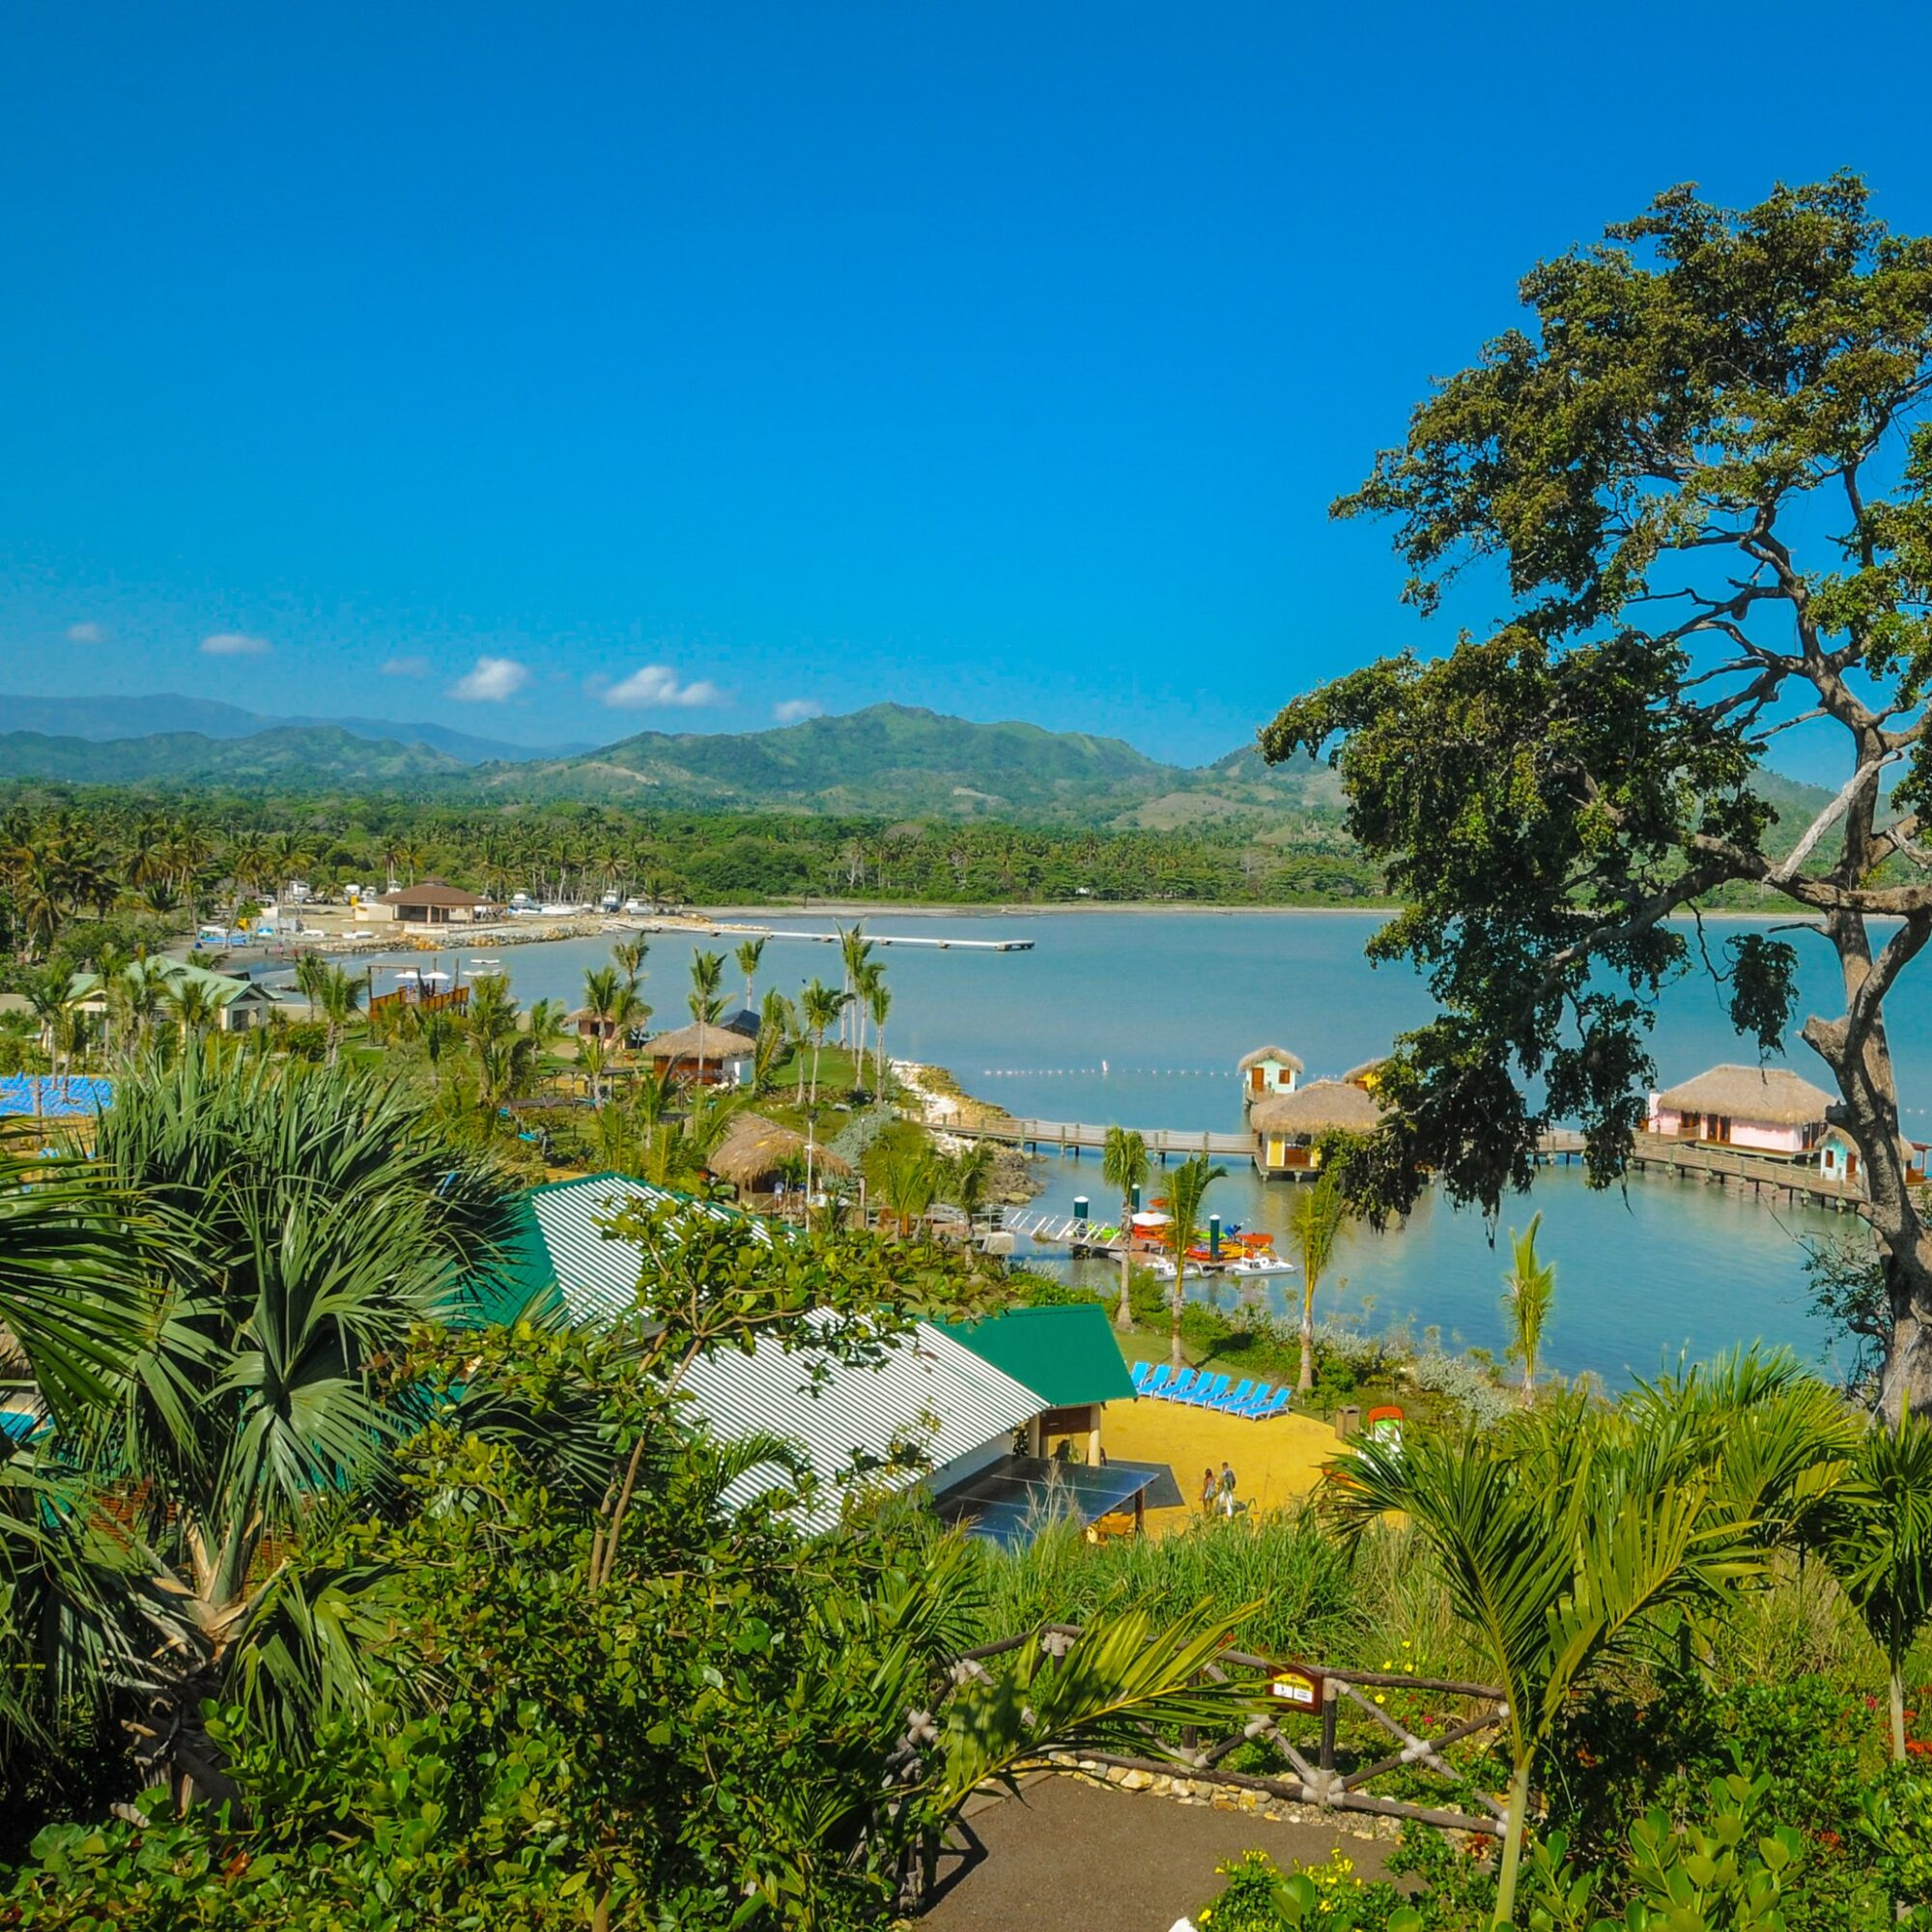 Views of Amber Cove in the Dominican Republic.